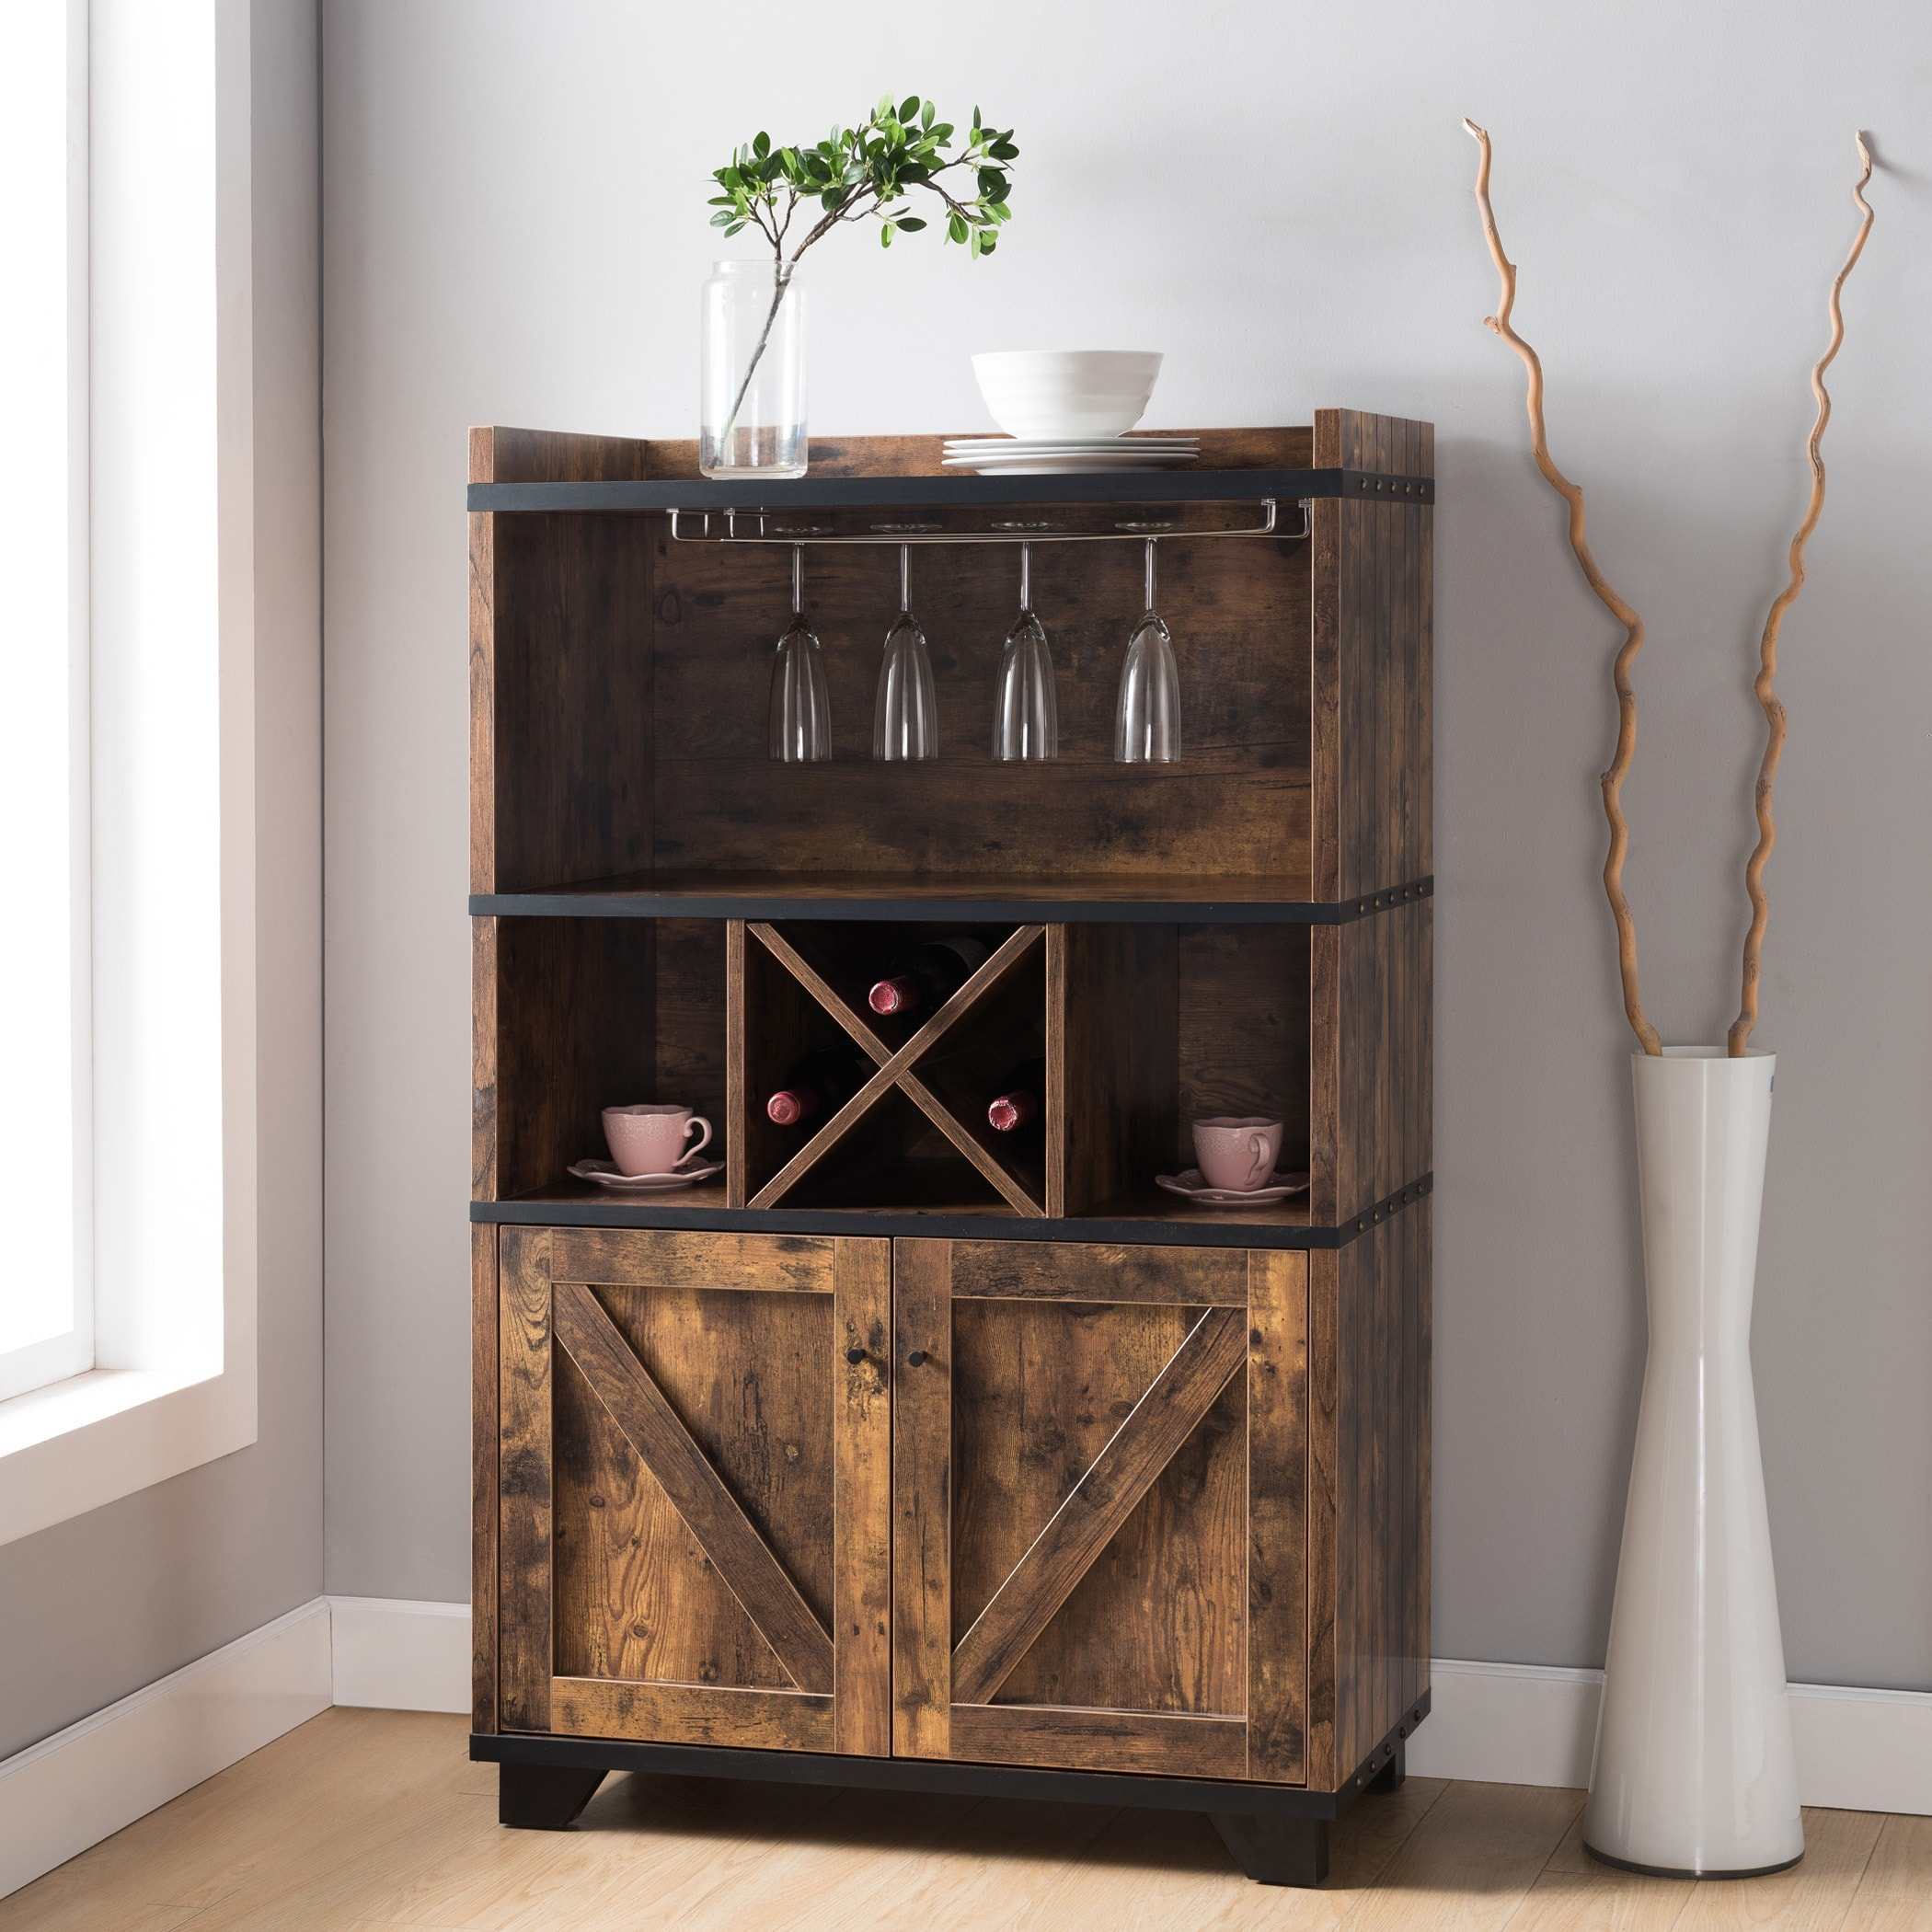 Furniture Of America Wesleyan Rustic Distressed Farmhouse Wine Cabinet  Buffet